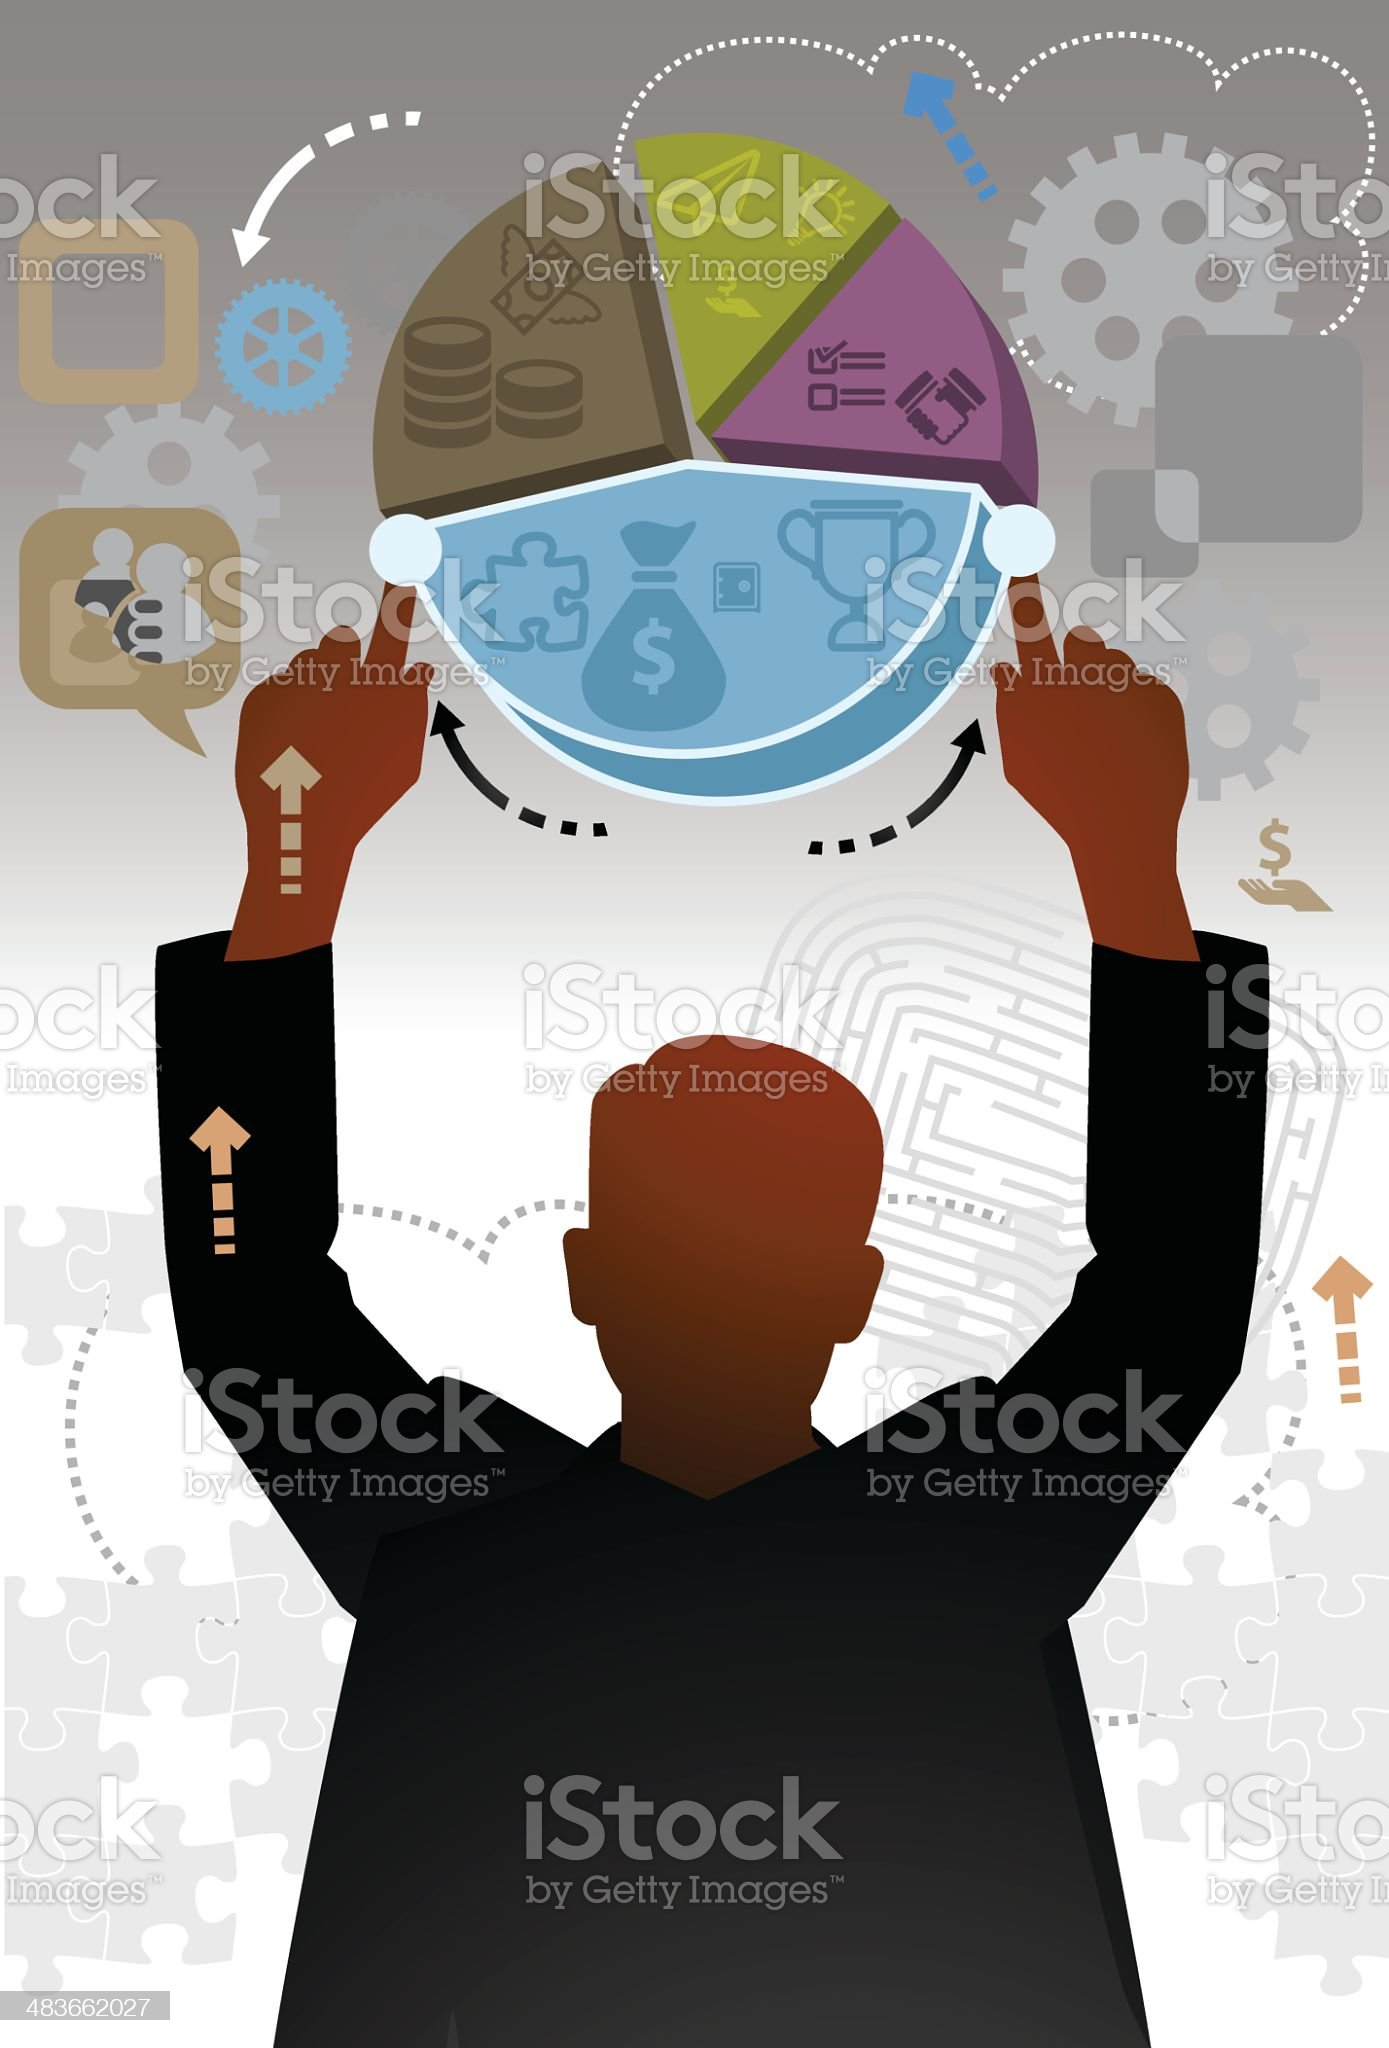 Increase Business royalty-free stock vector art